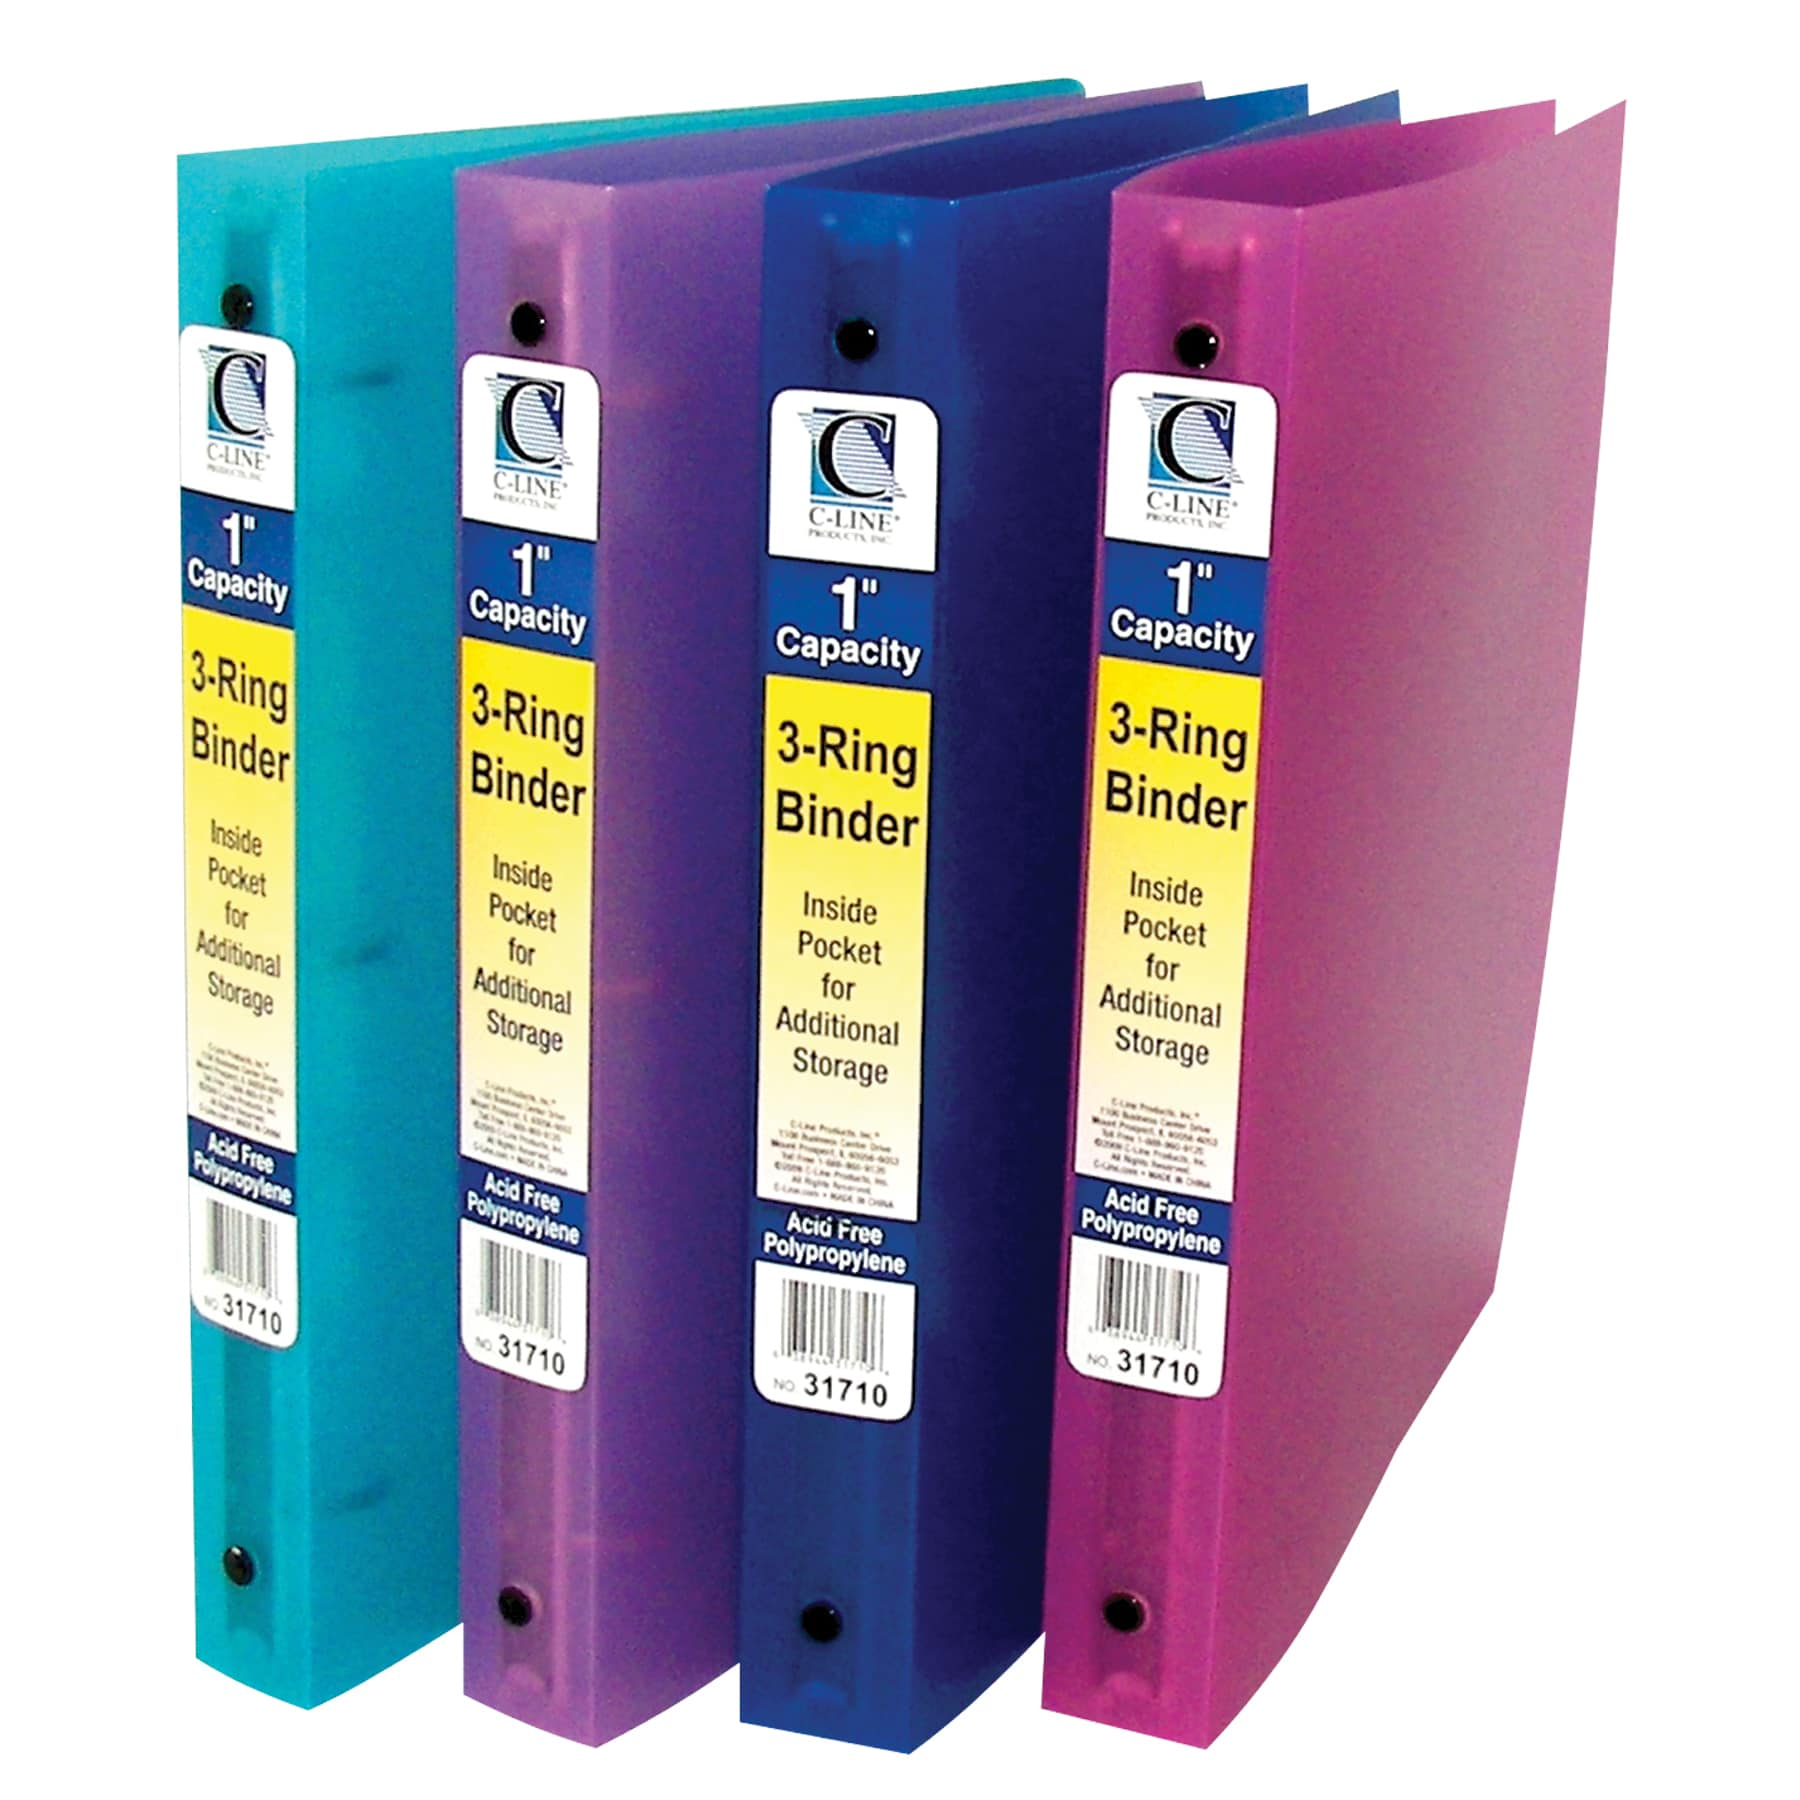 C-Line Products 3-Ring Poly Binder, 1 Inch Capacity (Color May Vary) (Set of 6 Binders) by Overstock